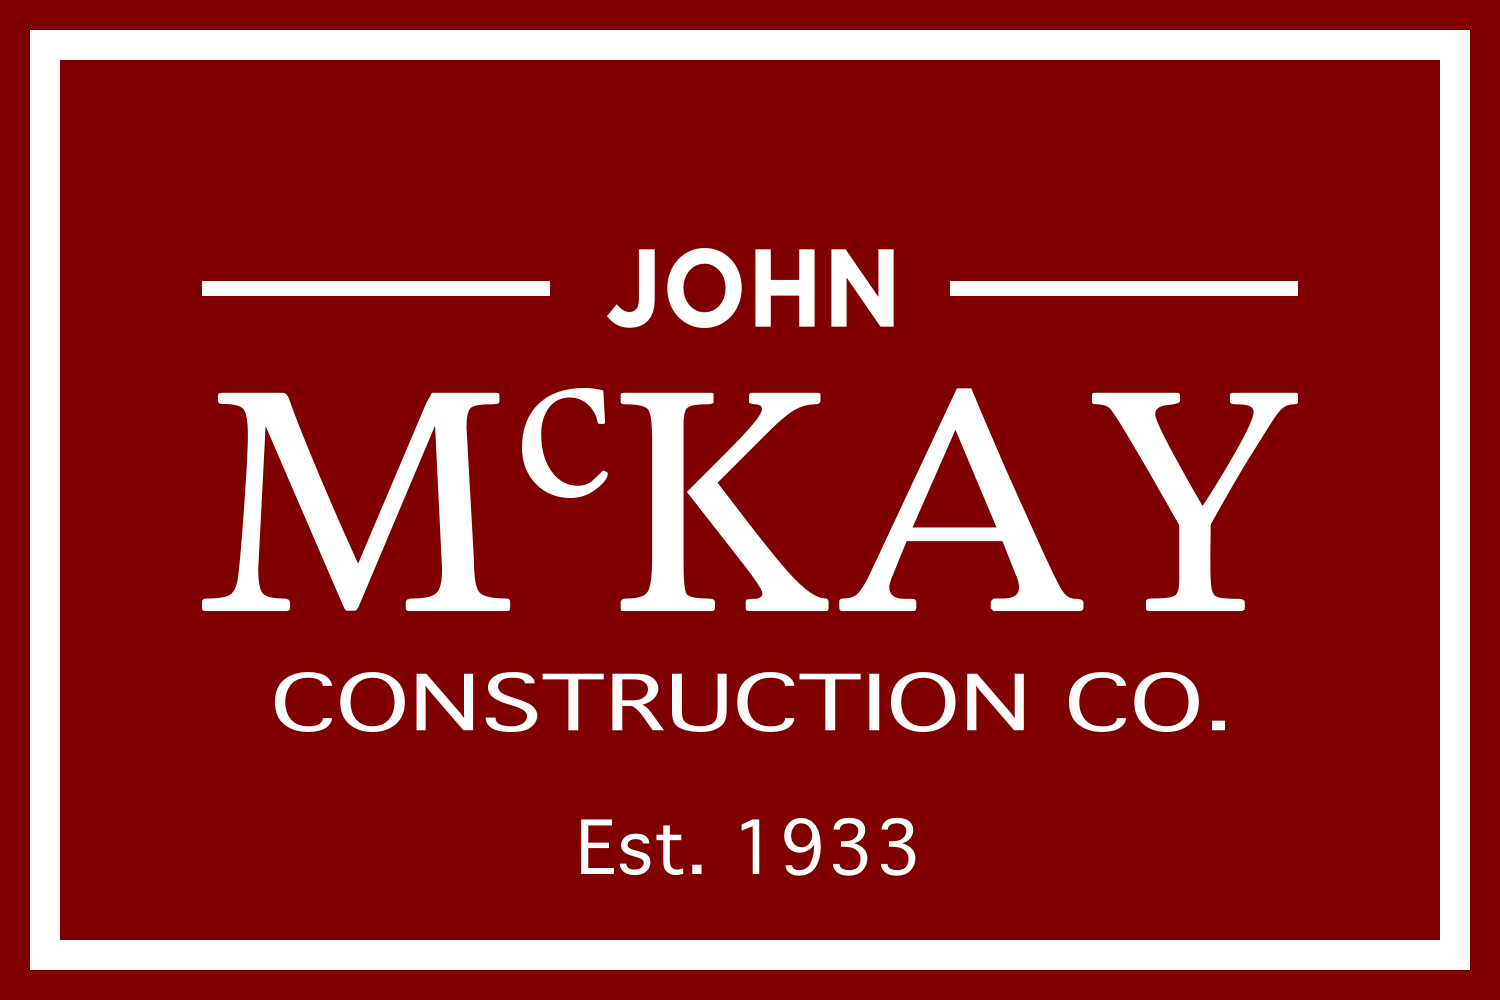 John McKay Construction Co.